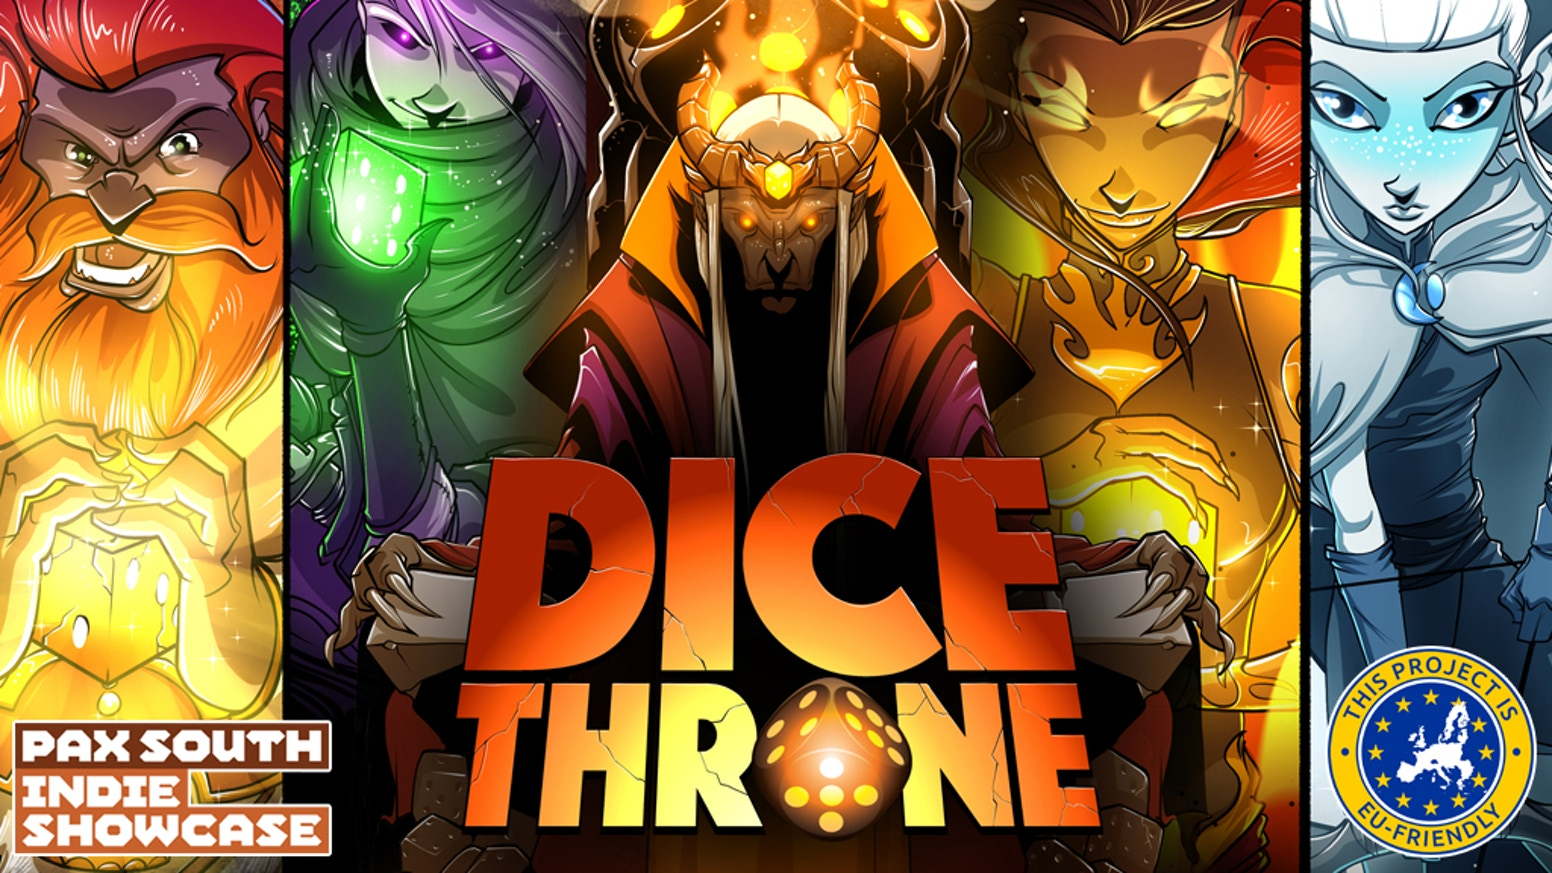 Unique dice, hero classes, battles, upgrades, & glory! Play 1v1, 2v2, 3v3, or free-for-all in this 20-40 minute action packed game!